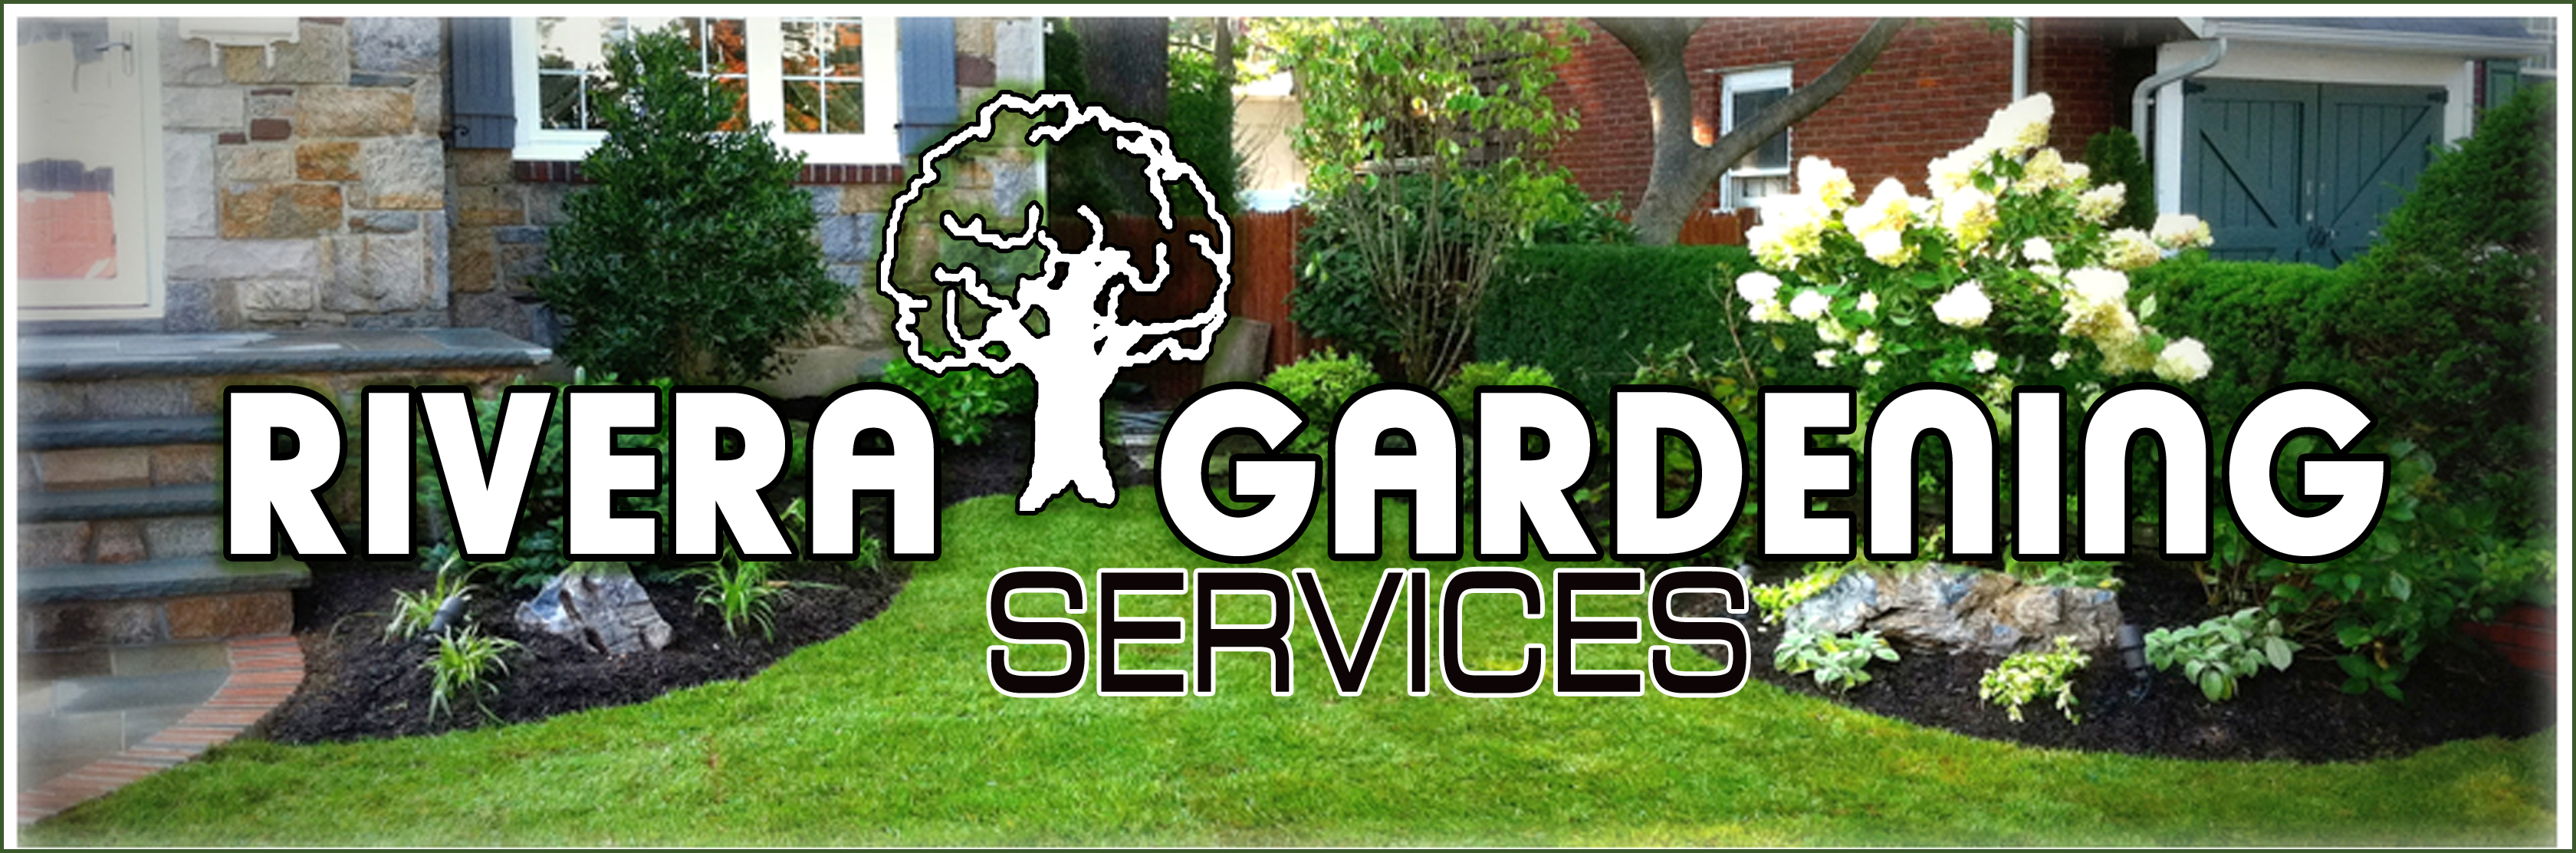 riveragardeningservice.com Blog